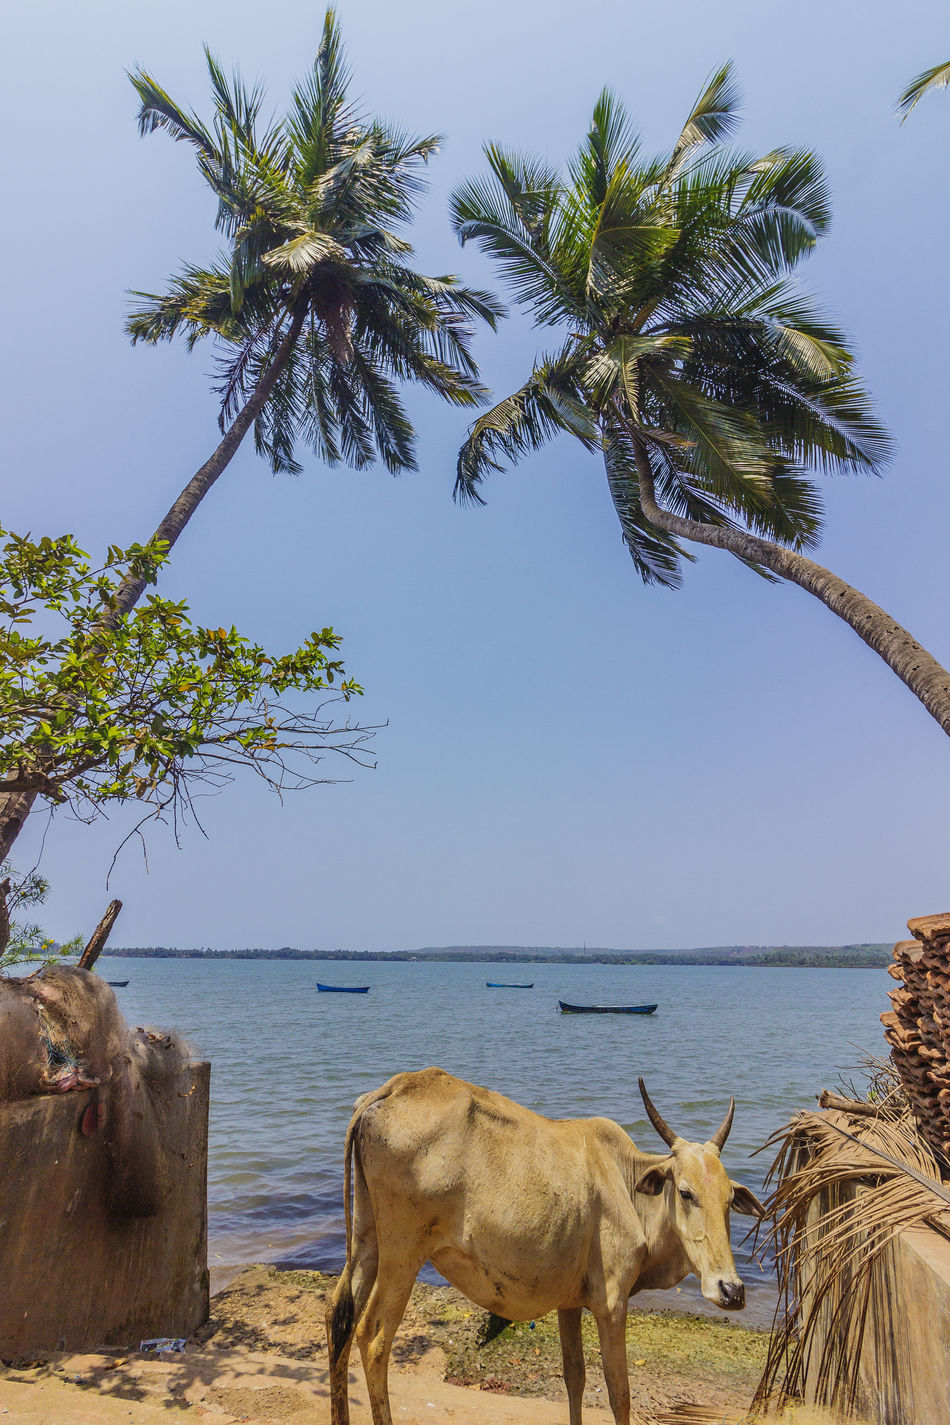 A Boats Composition Cow Daylight EyeEm Best Shots Goa Incredible India India Indiapictures Landscape Nature Nature Photography Palm Trees Photography Riverside Street Photography Streetphoto_bw Streetphotography Tranquility Vertical Village Village Life Village Photography